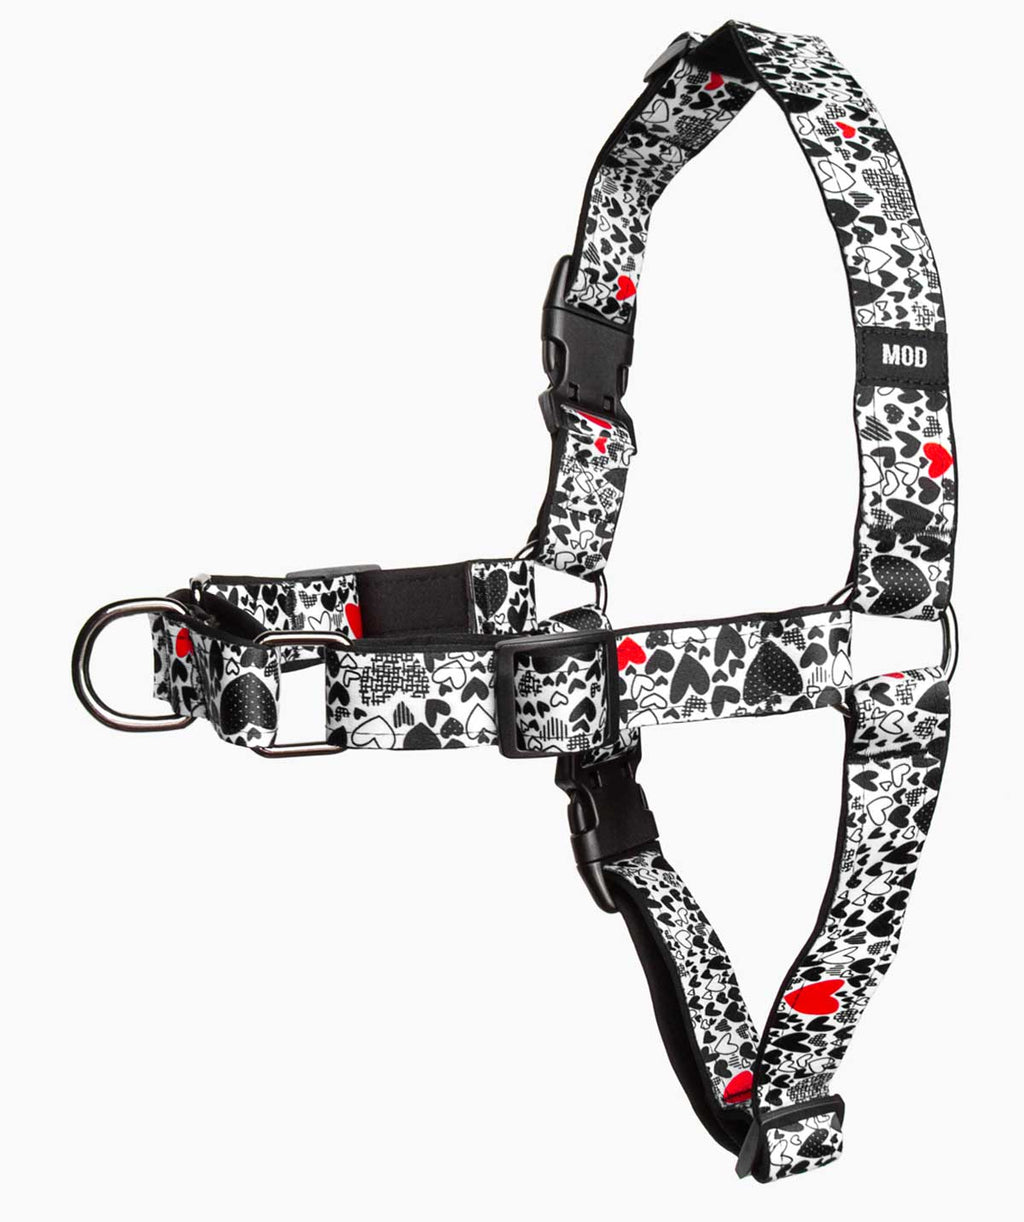 Stronger Together No-Pull Harness - A Side - MODLEASH